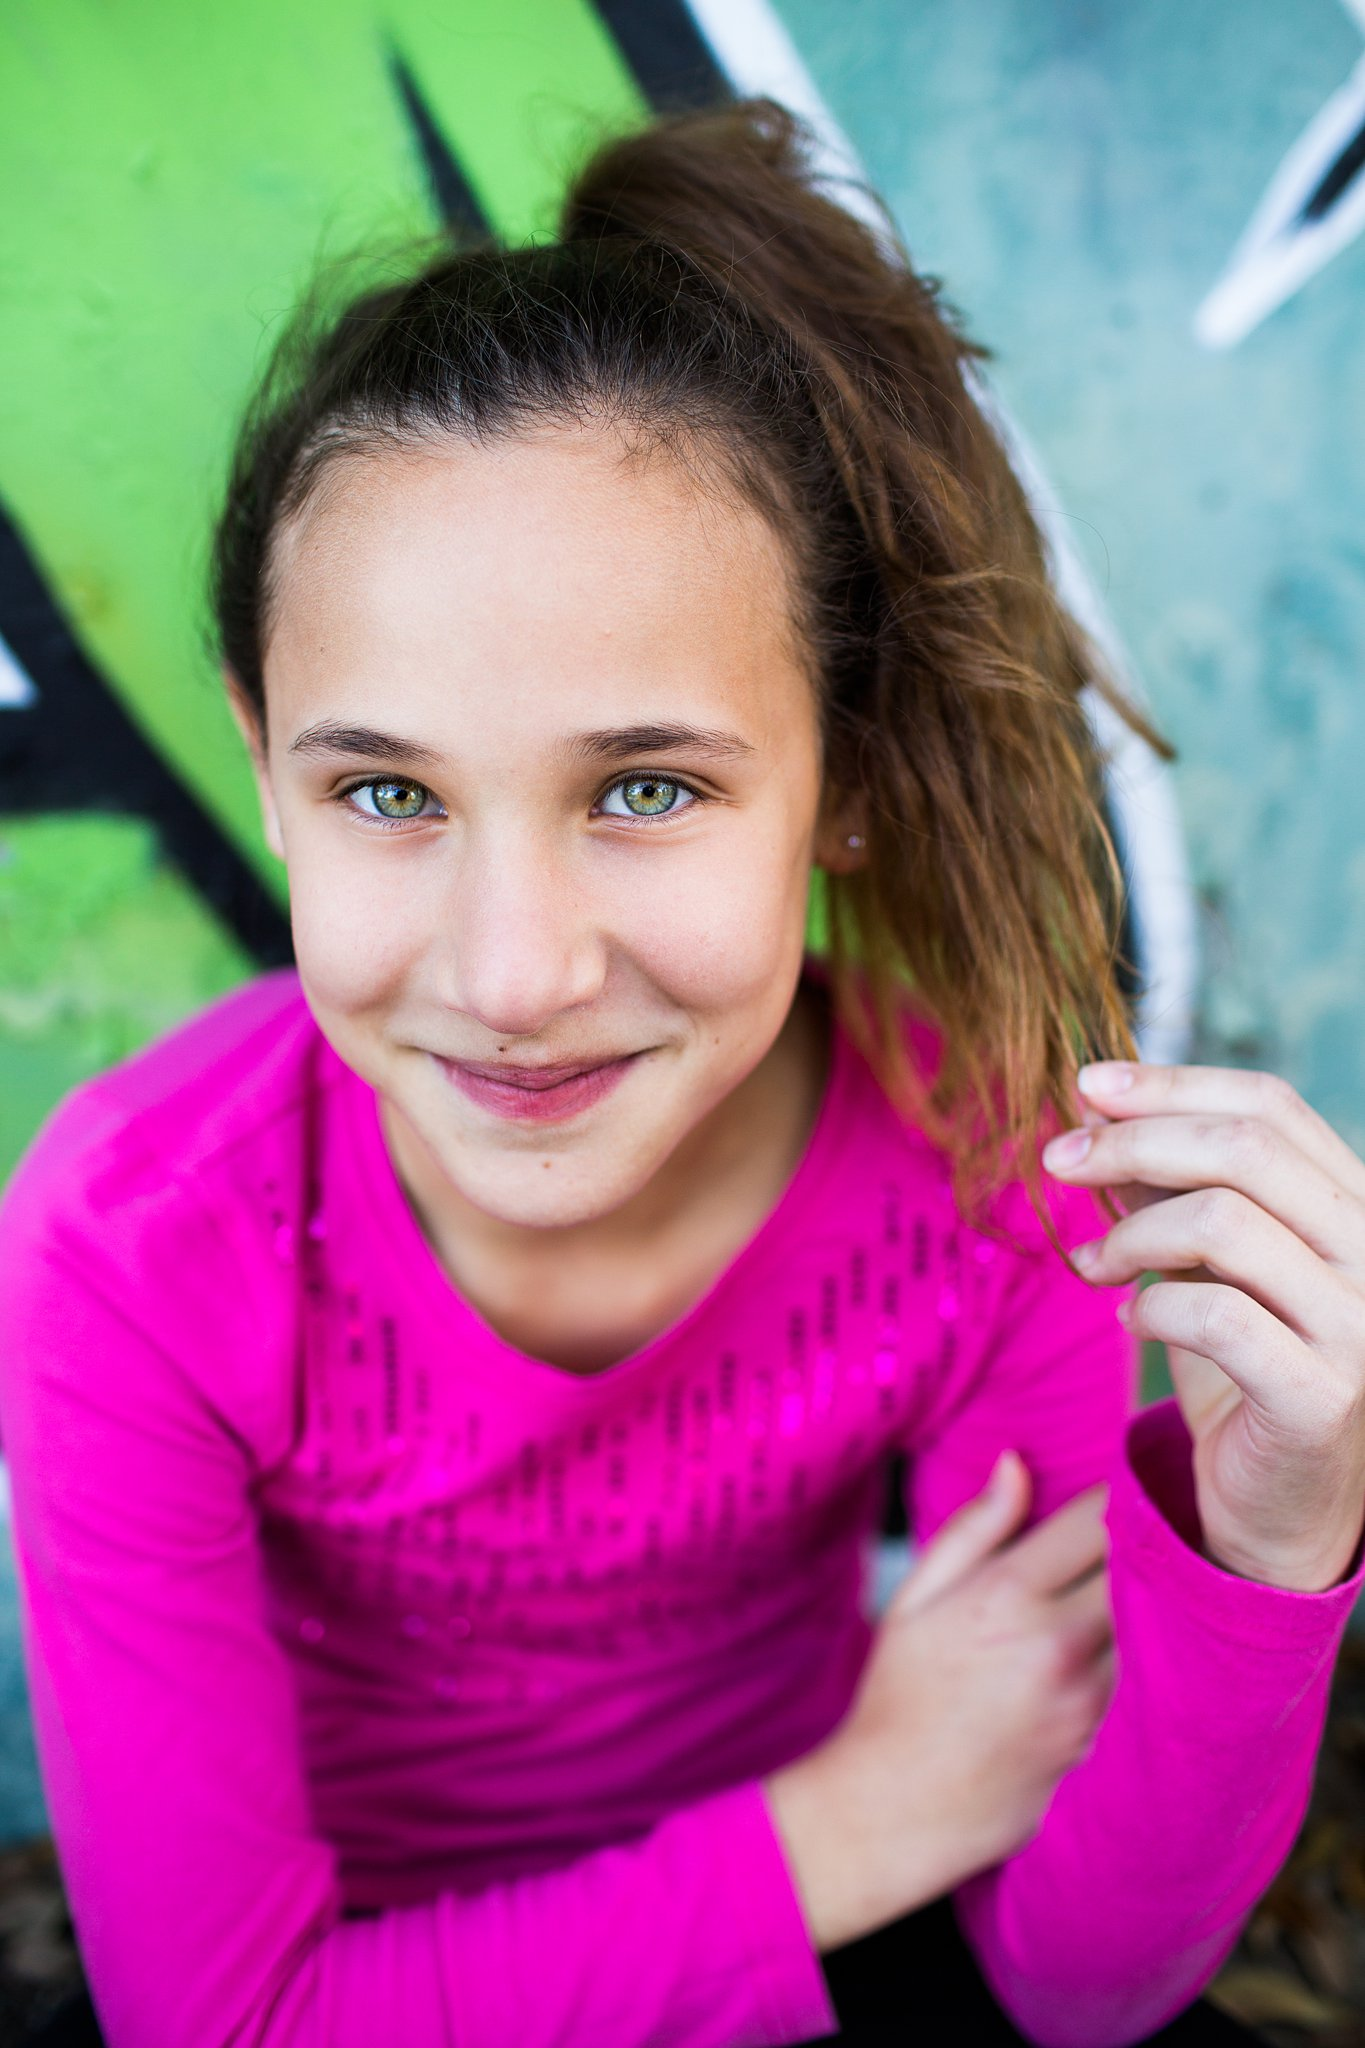 dance headshots for a young girl in front of a graffiti wall